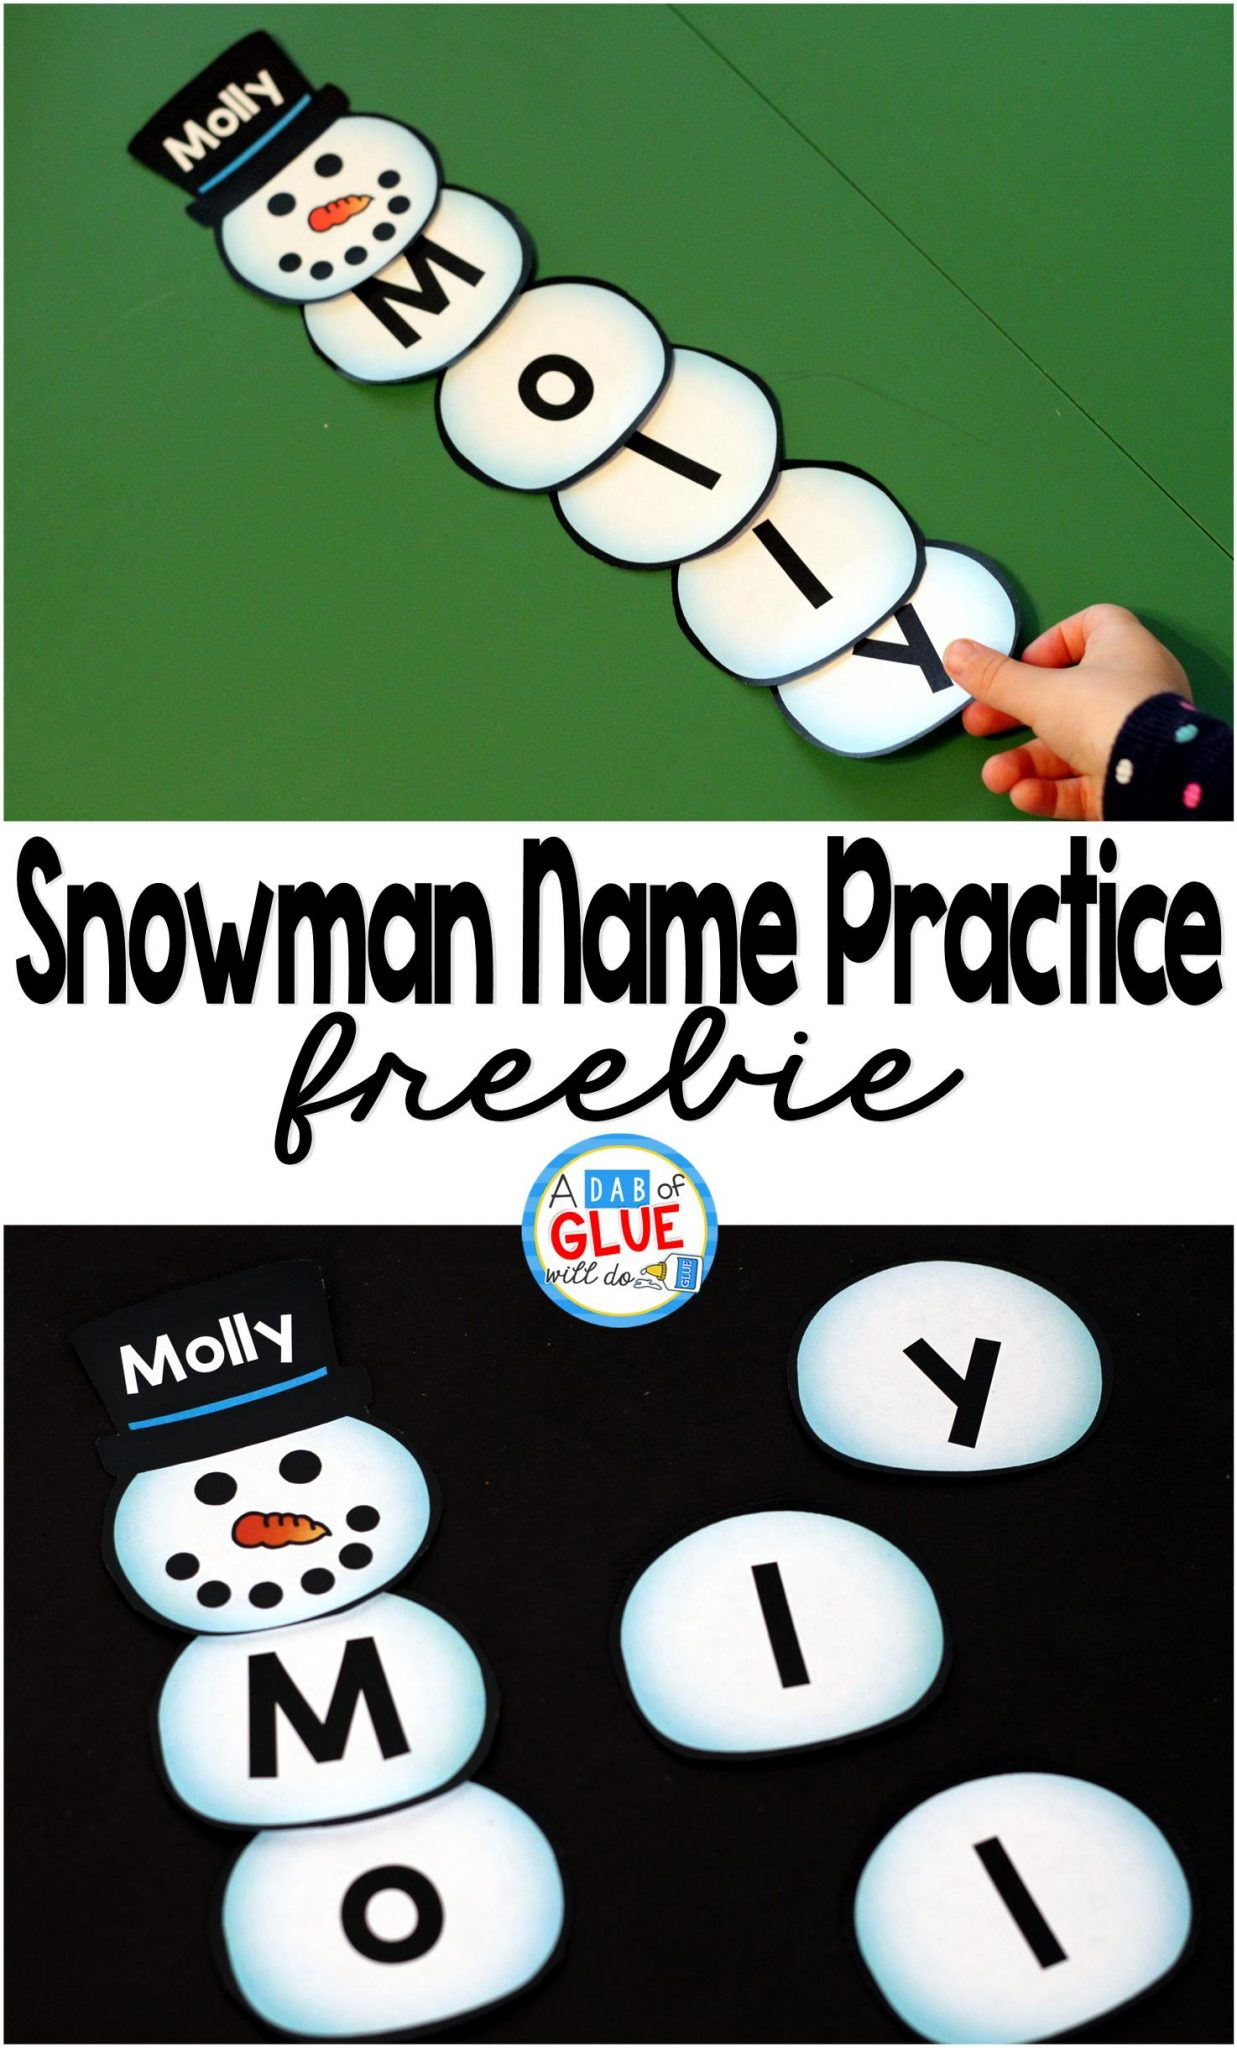 Snowman Names - Name Building Practice Printable - A Dab of Glue Will Do